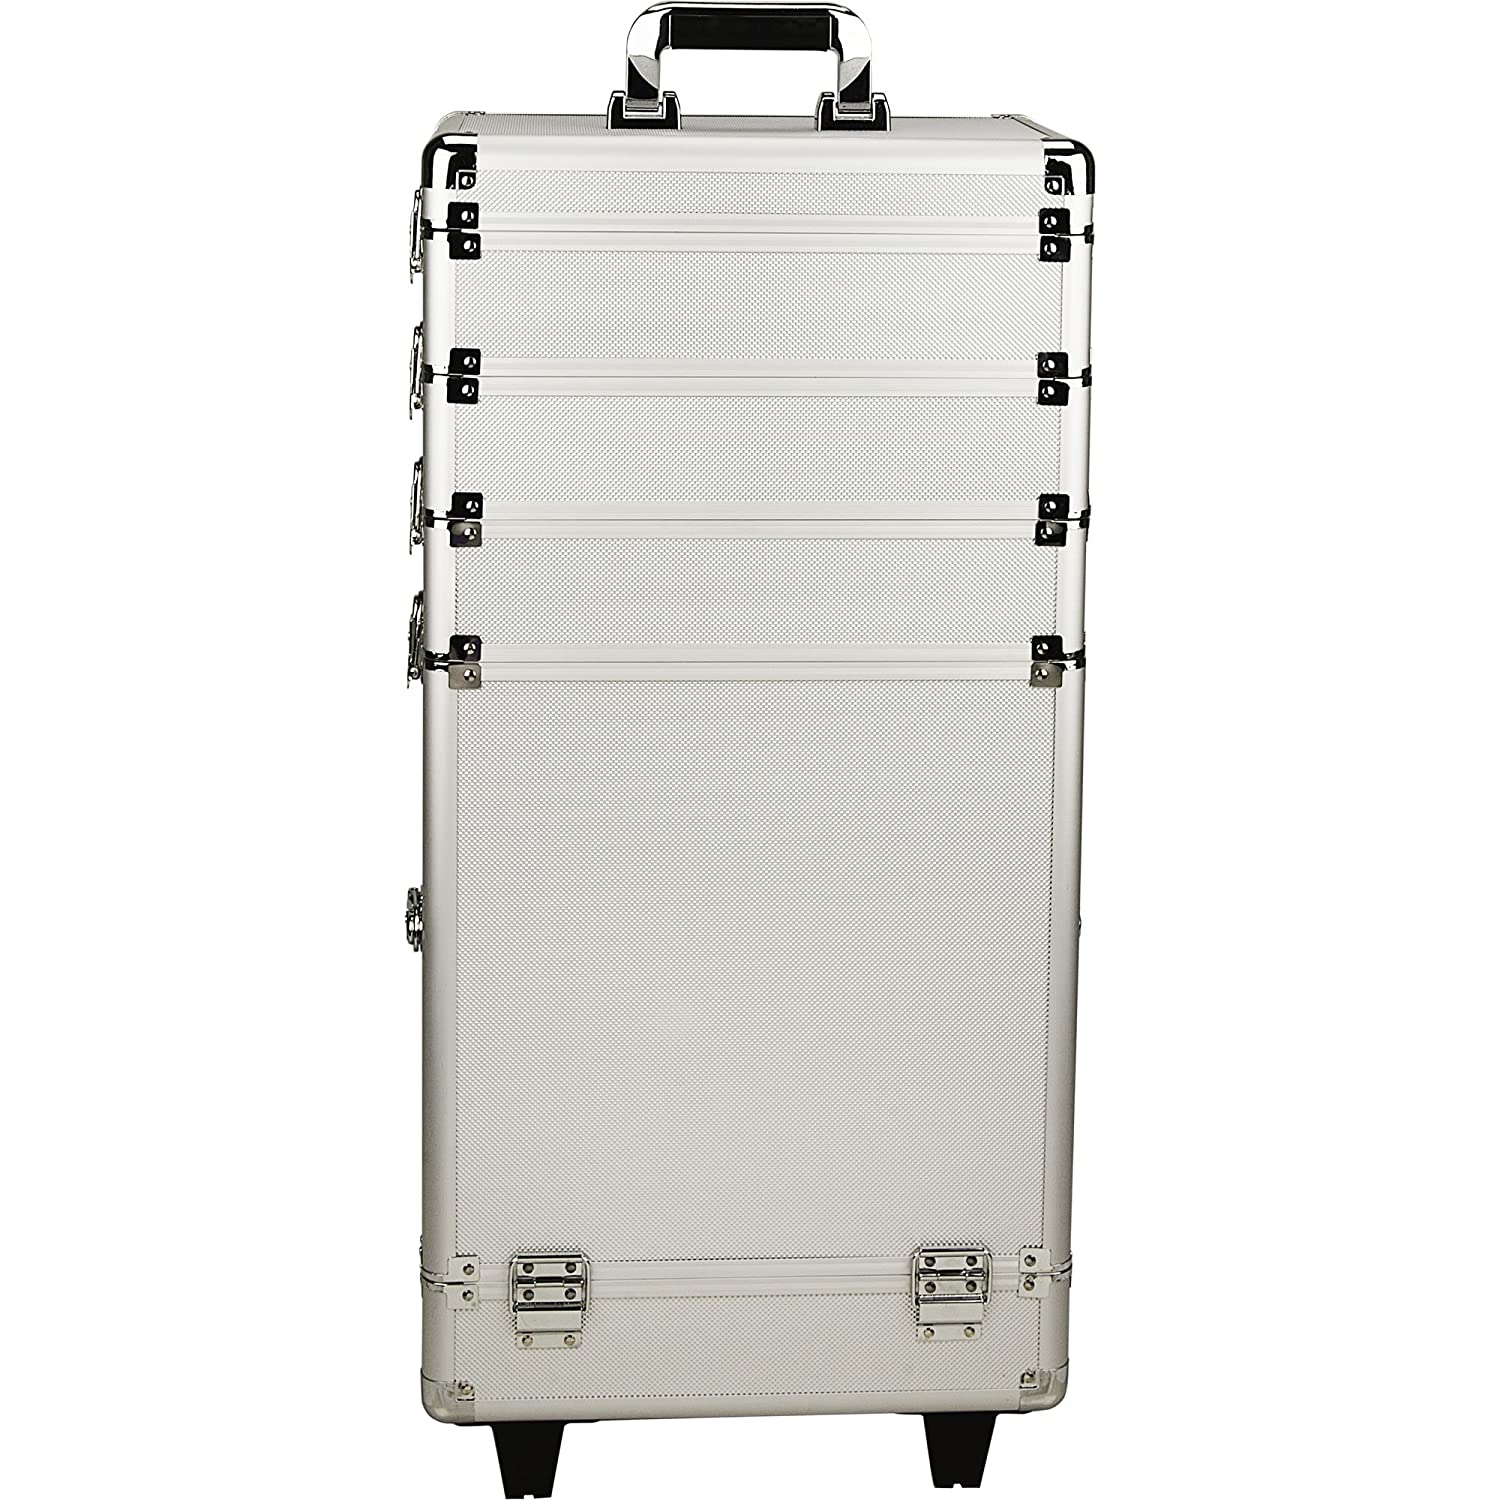 Just Case 4-in-1 Professional Rolling Aluminum Cosmetic Makeup Case and Removable Trays, Silver Dot NG7203DTSL